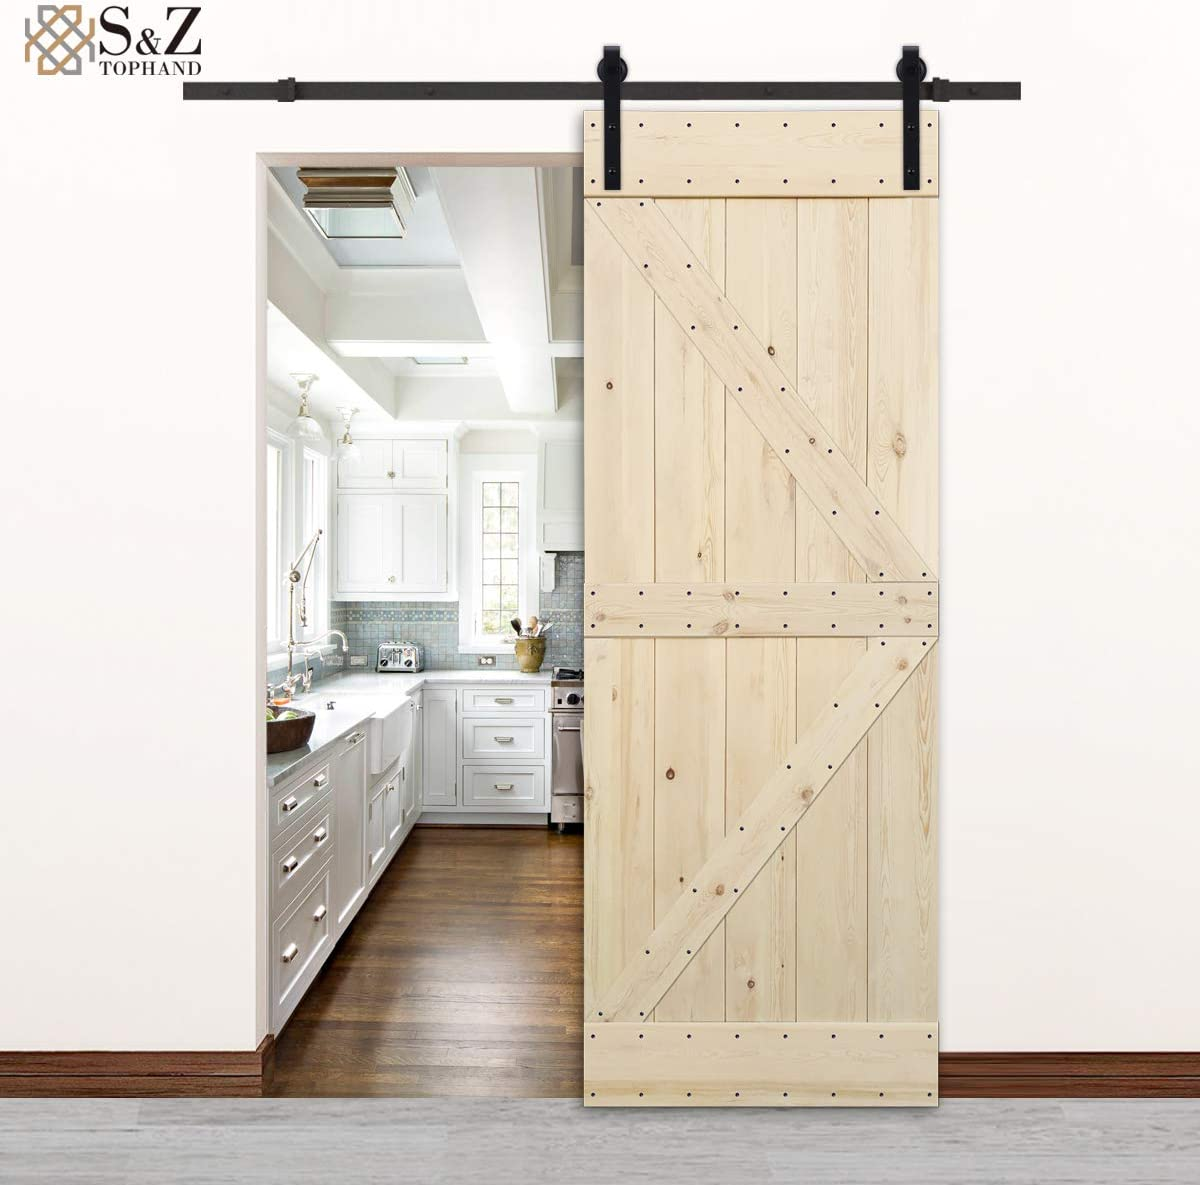 British Brace Knotty Pine Barn Door//Double Surfaces//A Simple Assembly is Required. 42, Coffee Coffee S/&Z TOPHAND 42 in Finished Antique Art x 84 in